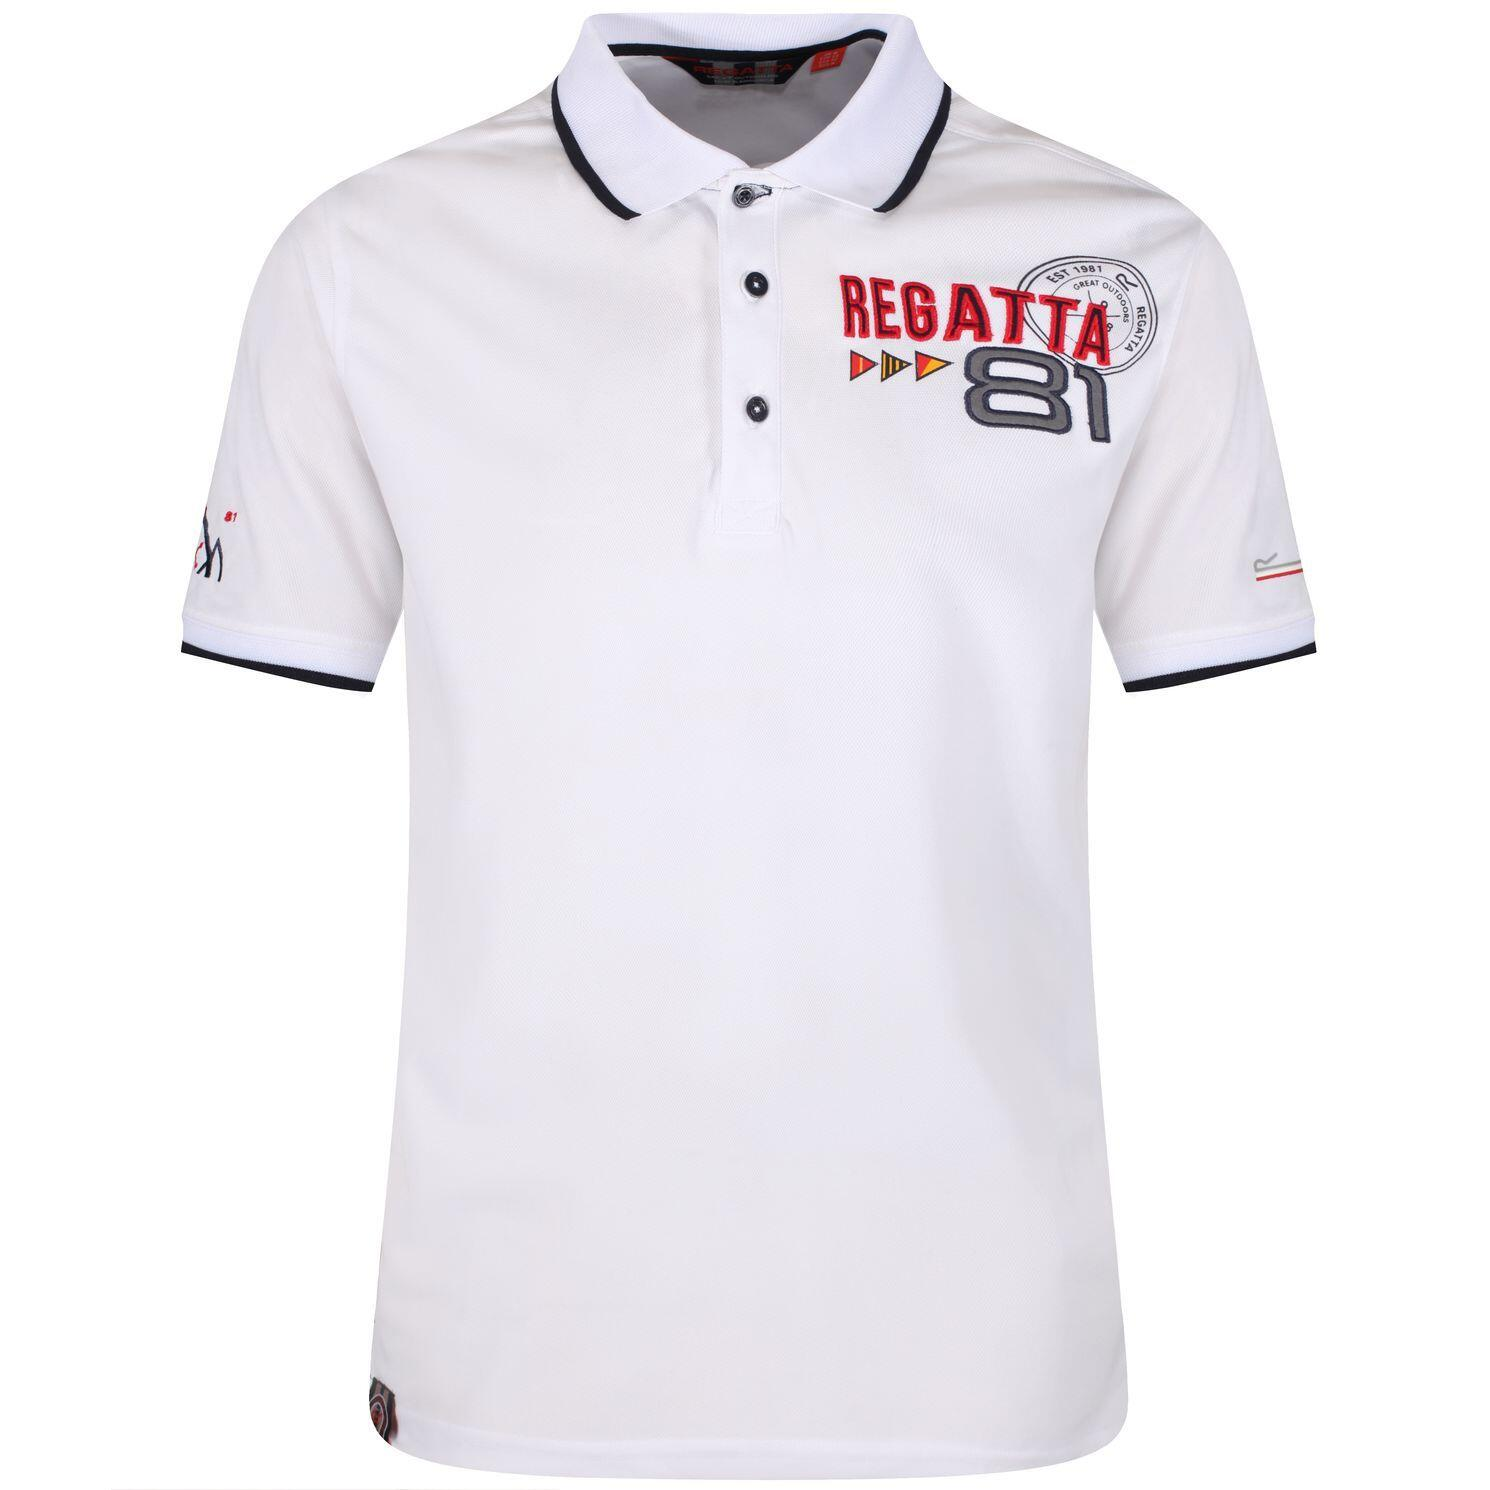 Regatta Polo Shirt Tremont II weiss